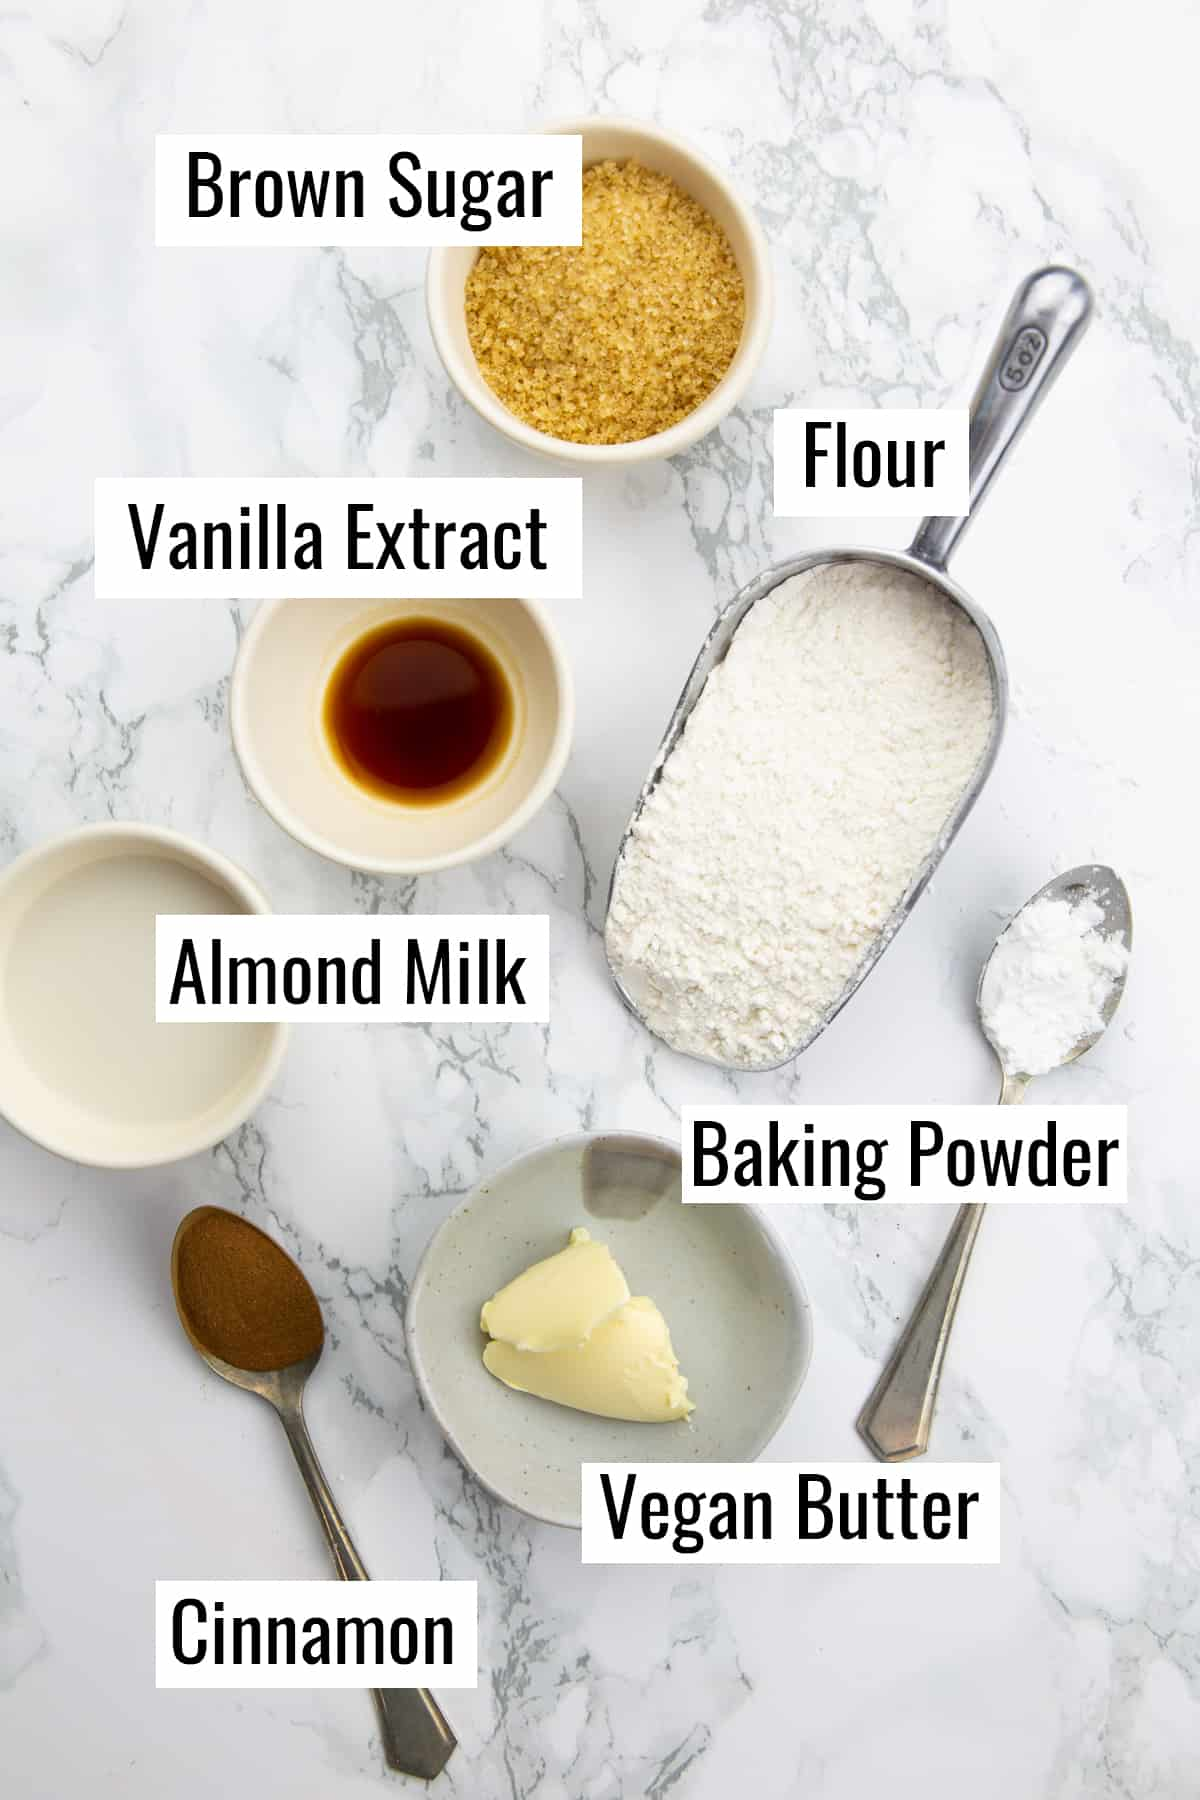 the ingredients for this recipe on a marble countertop with labels